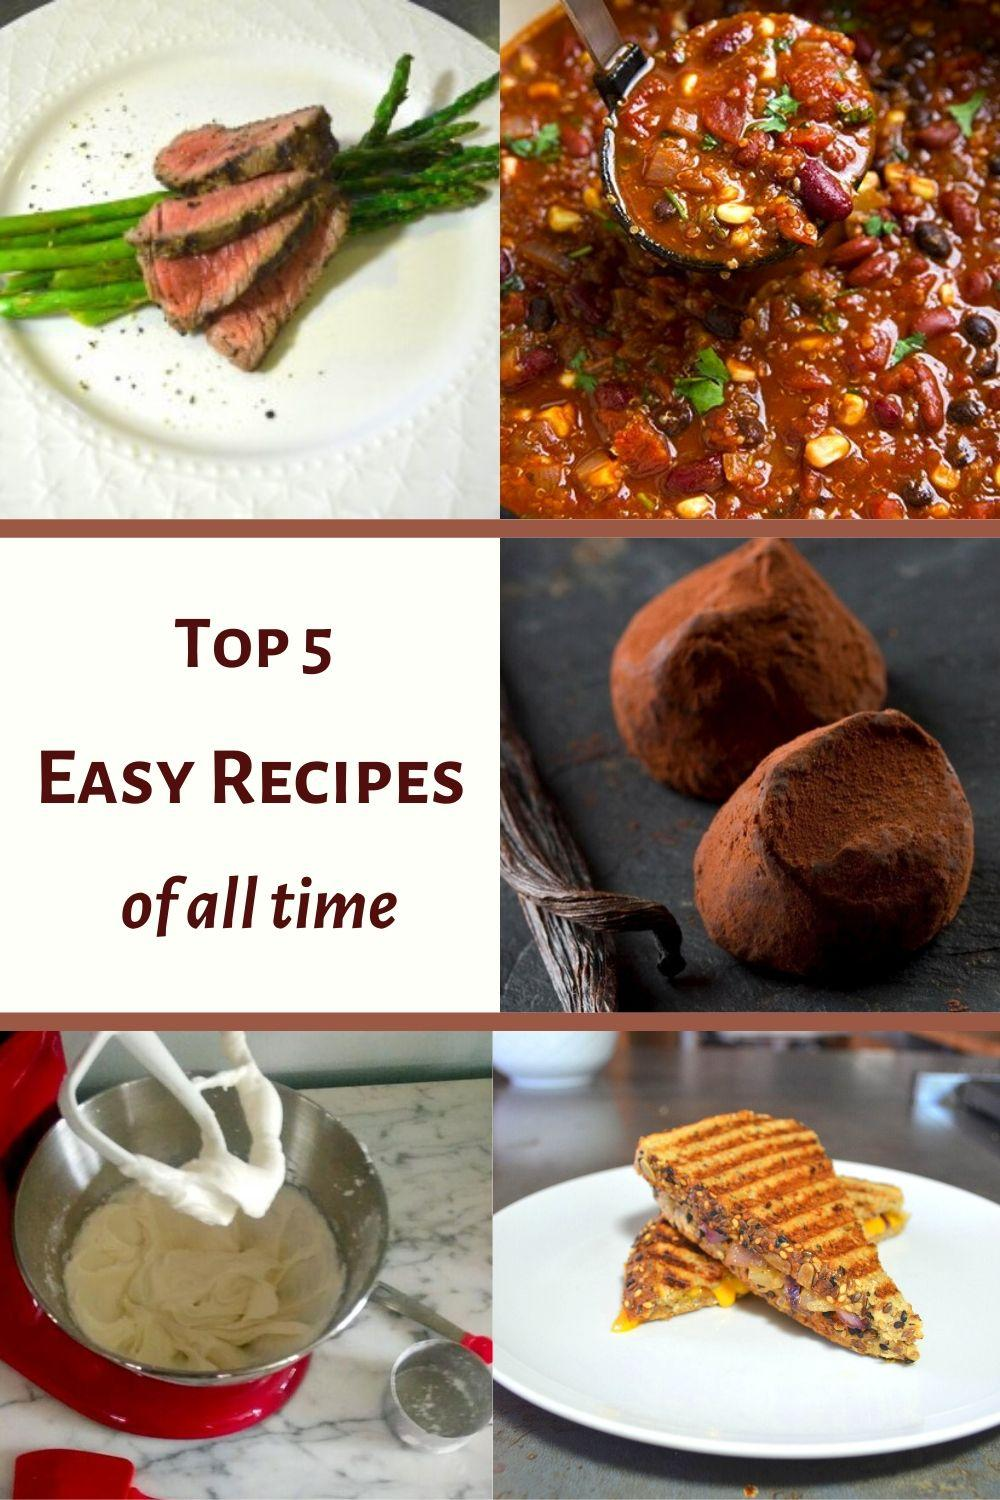 Top 5 Best Recipes of All Time Pinnable Graphic